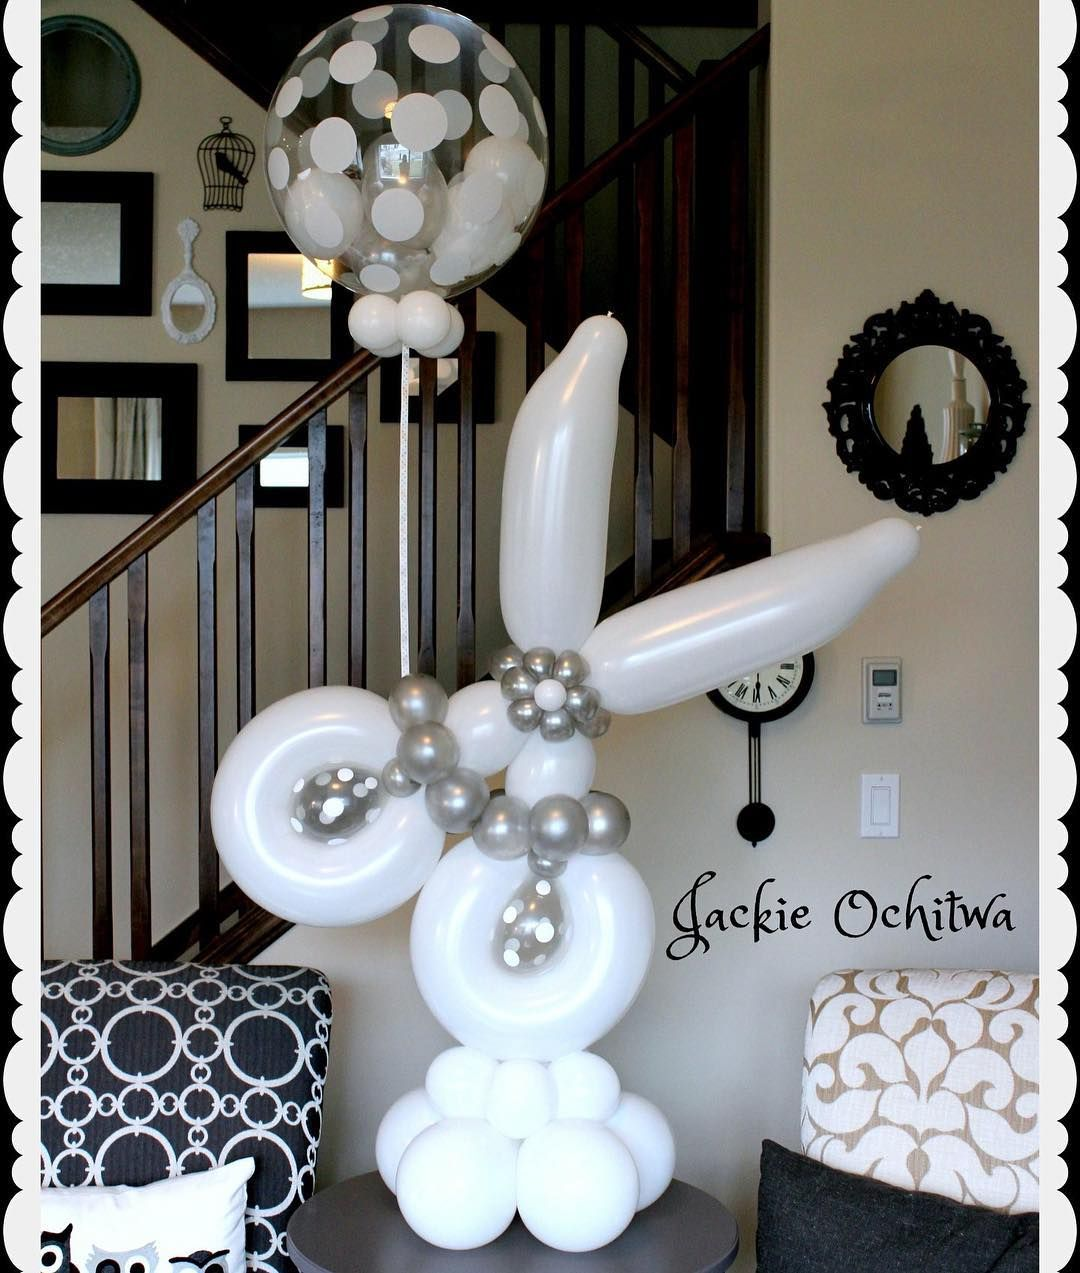 Pin By V Wr On Balloon Arches Columns Decor In 2019 Balloon